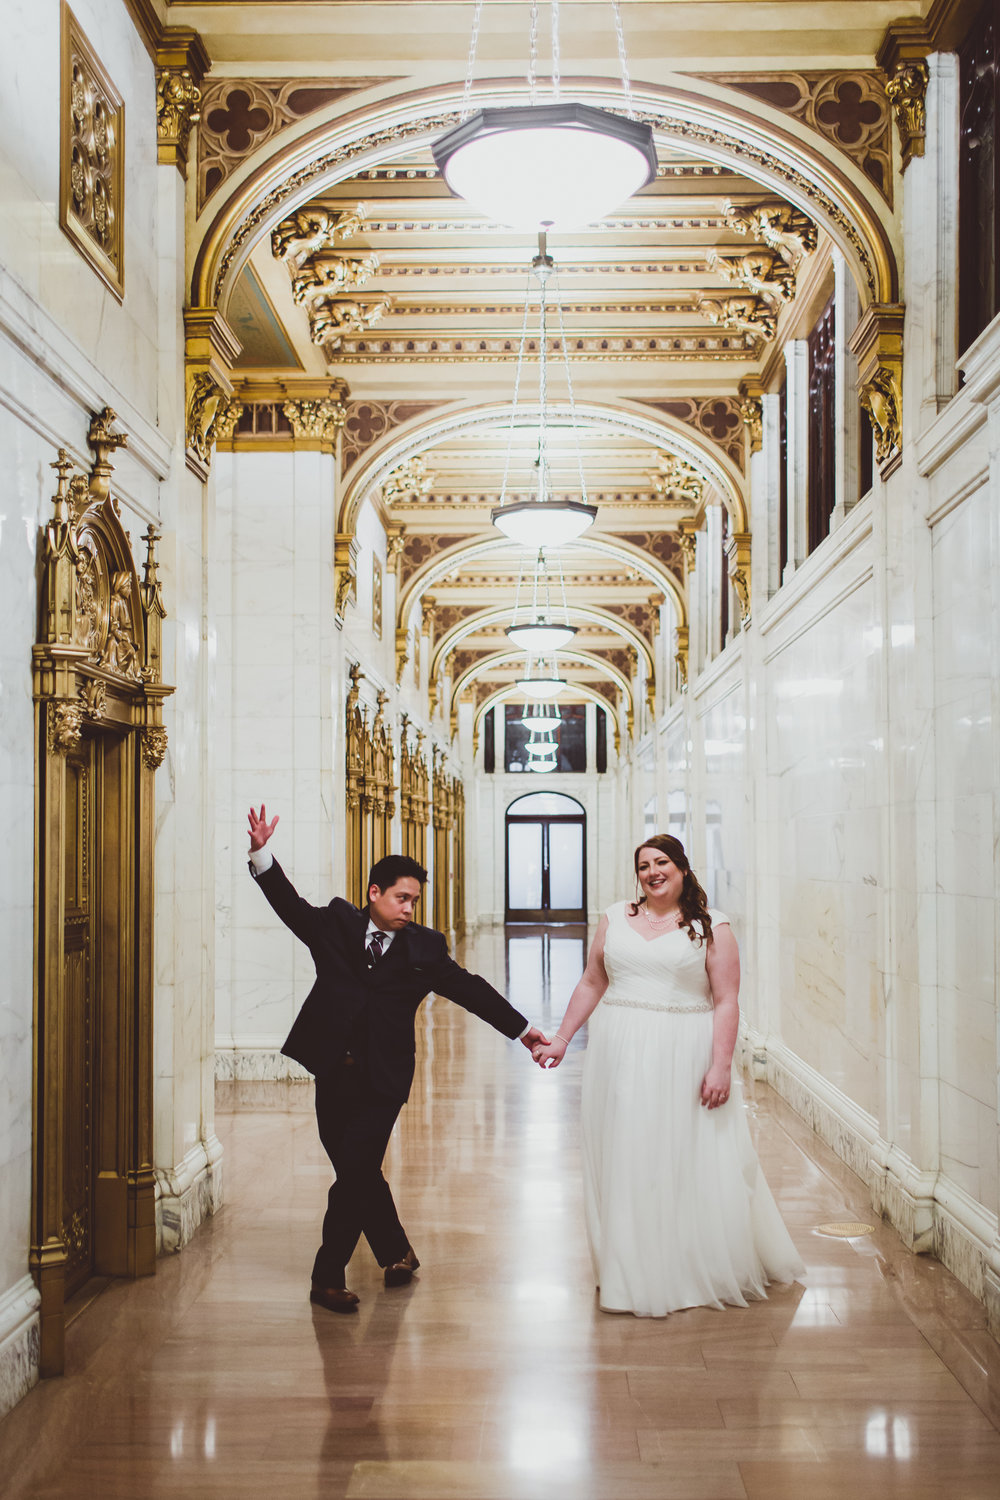 New-York-Documentary-Wedding-Photography-Best-Of-2017-by-Elvira-Kalviste-Photography-94.jpg